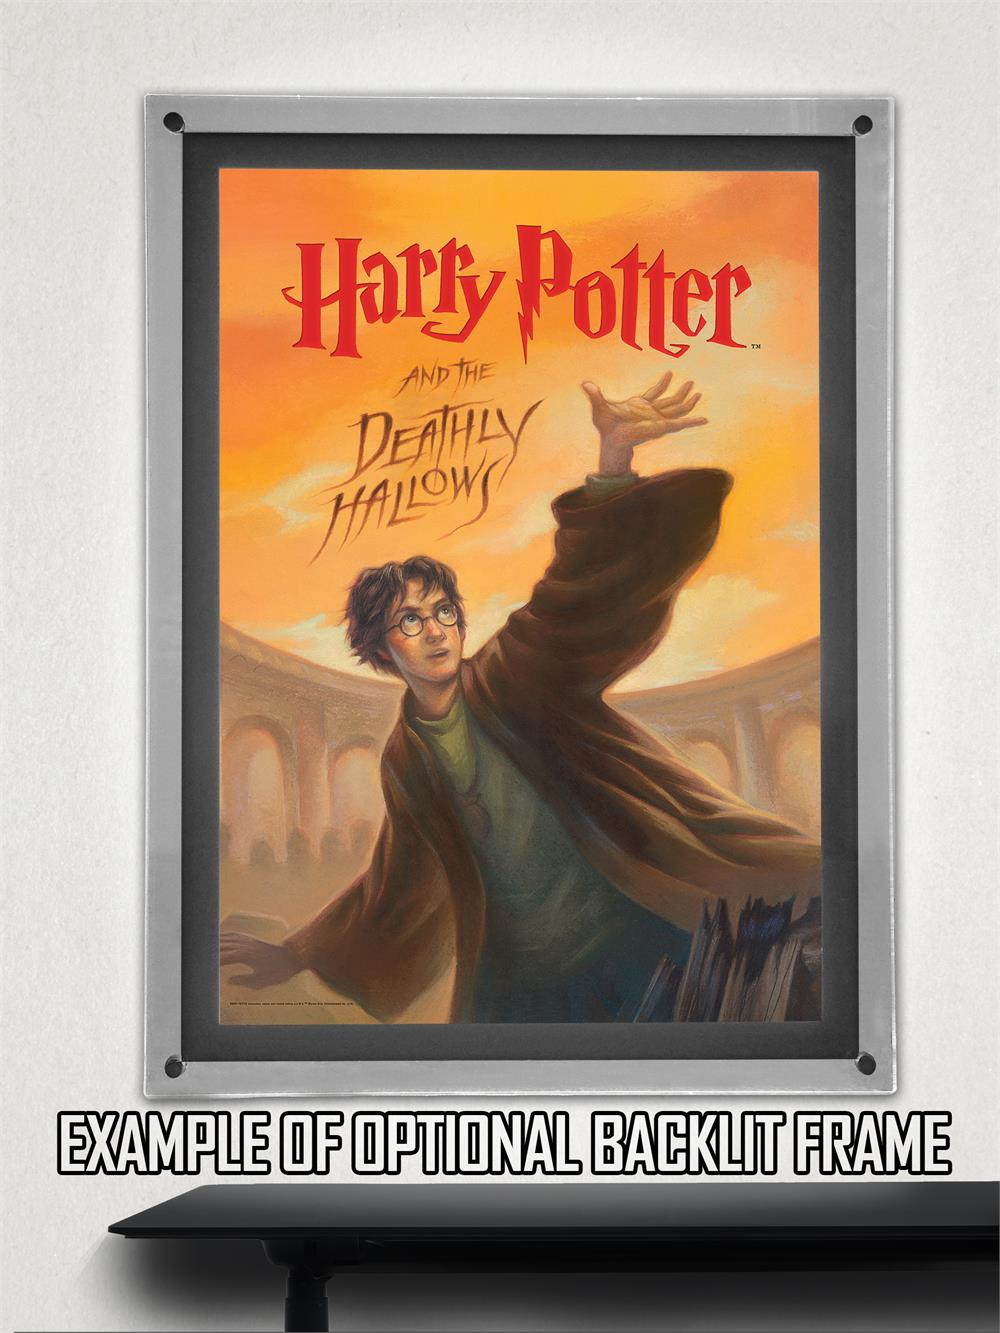 Harry Potter Book Cover Deathly Hallows Mightyprint